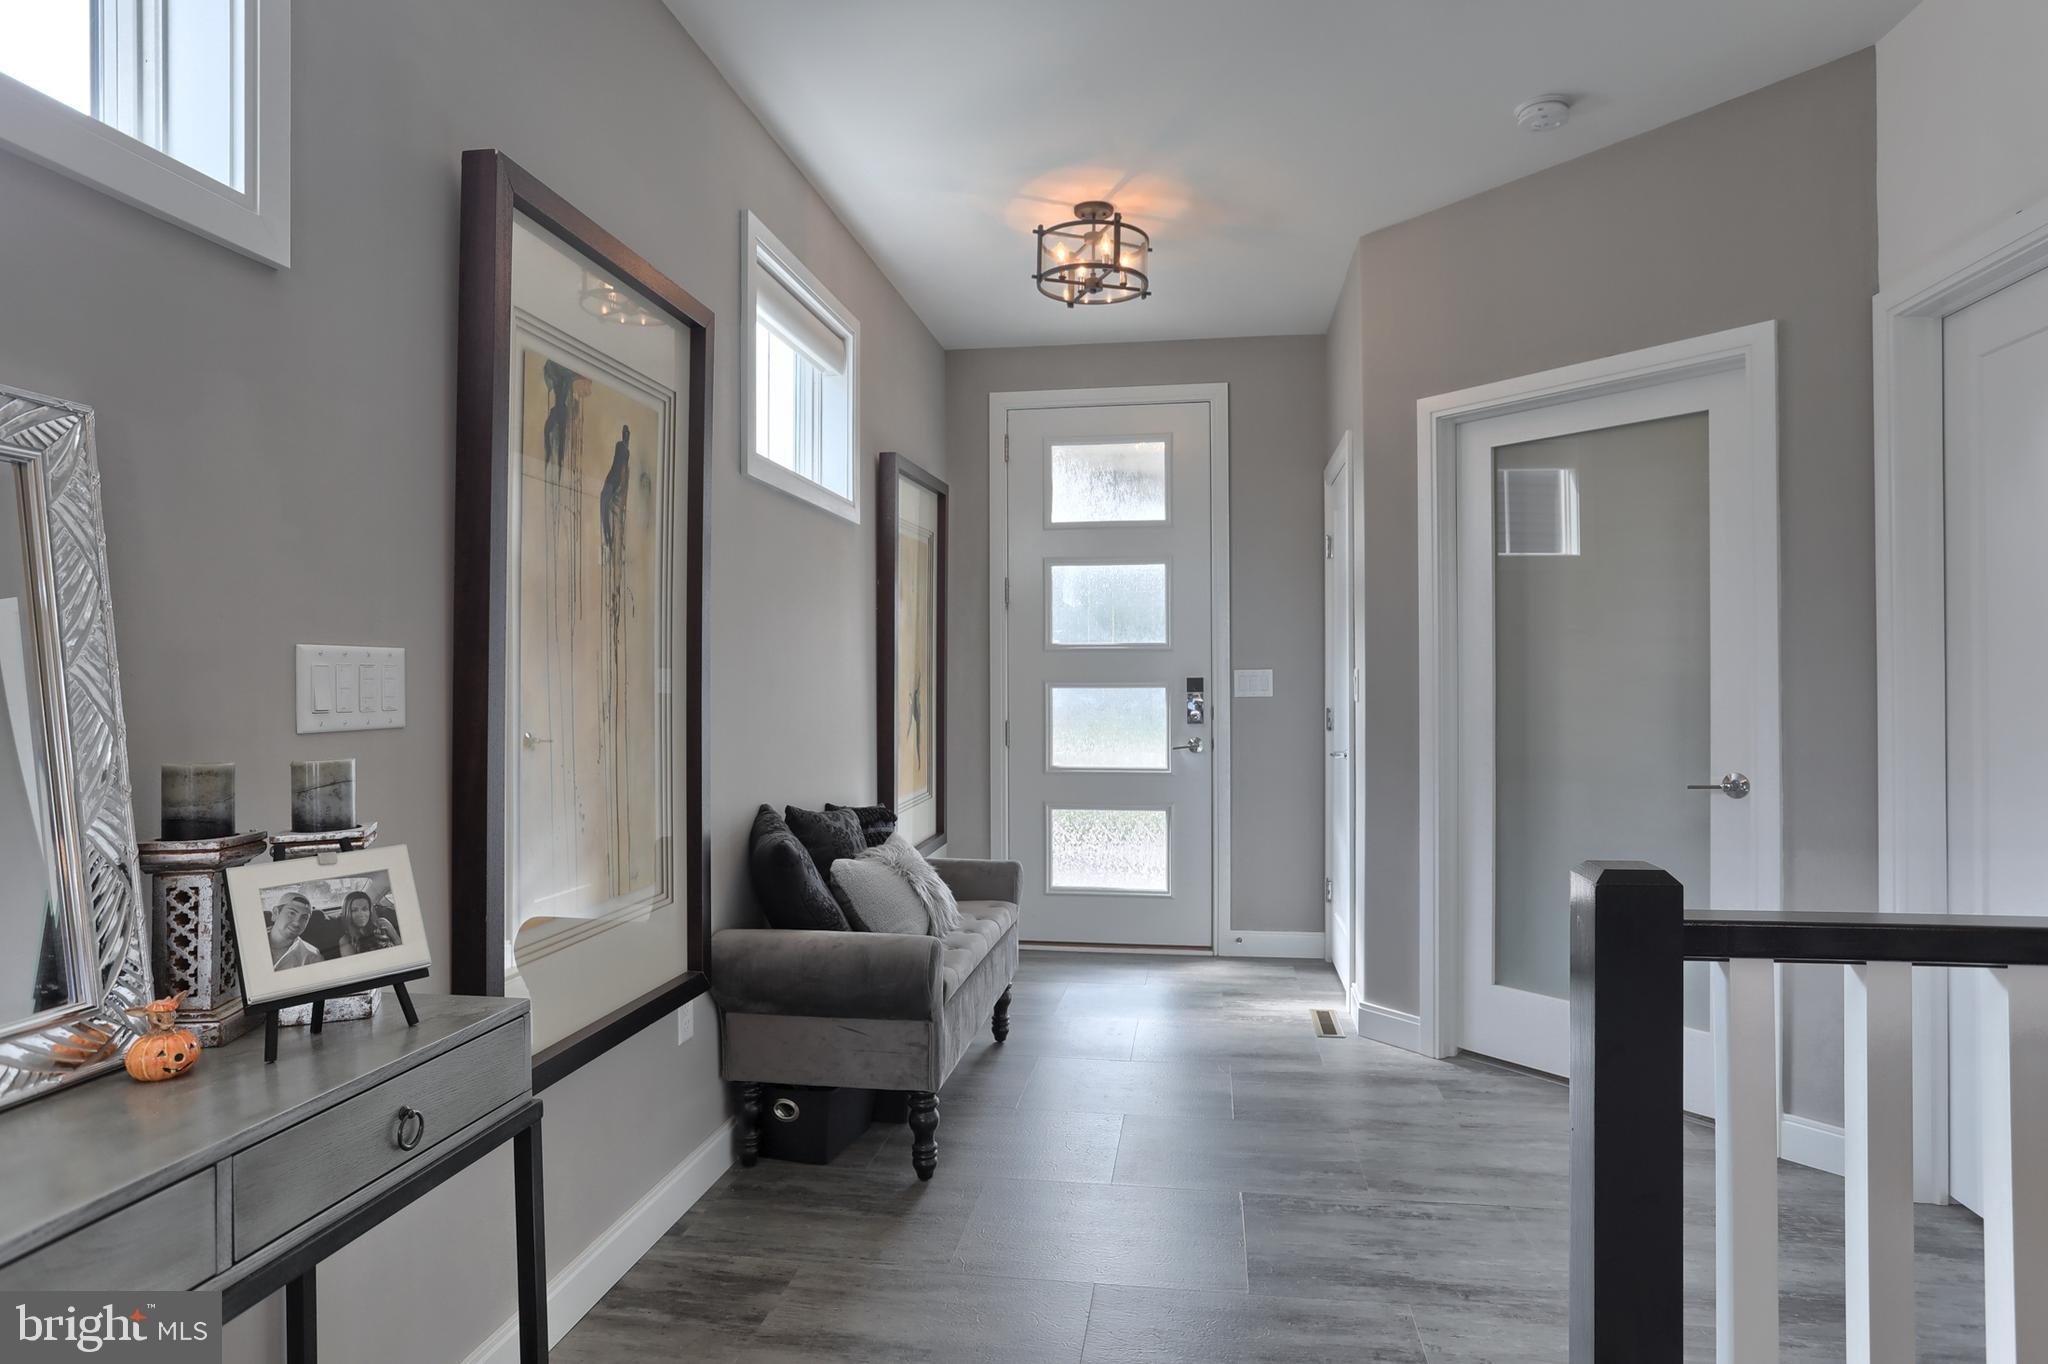 Foyer/entry into home